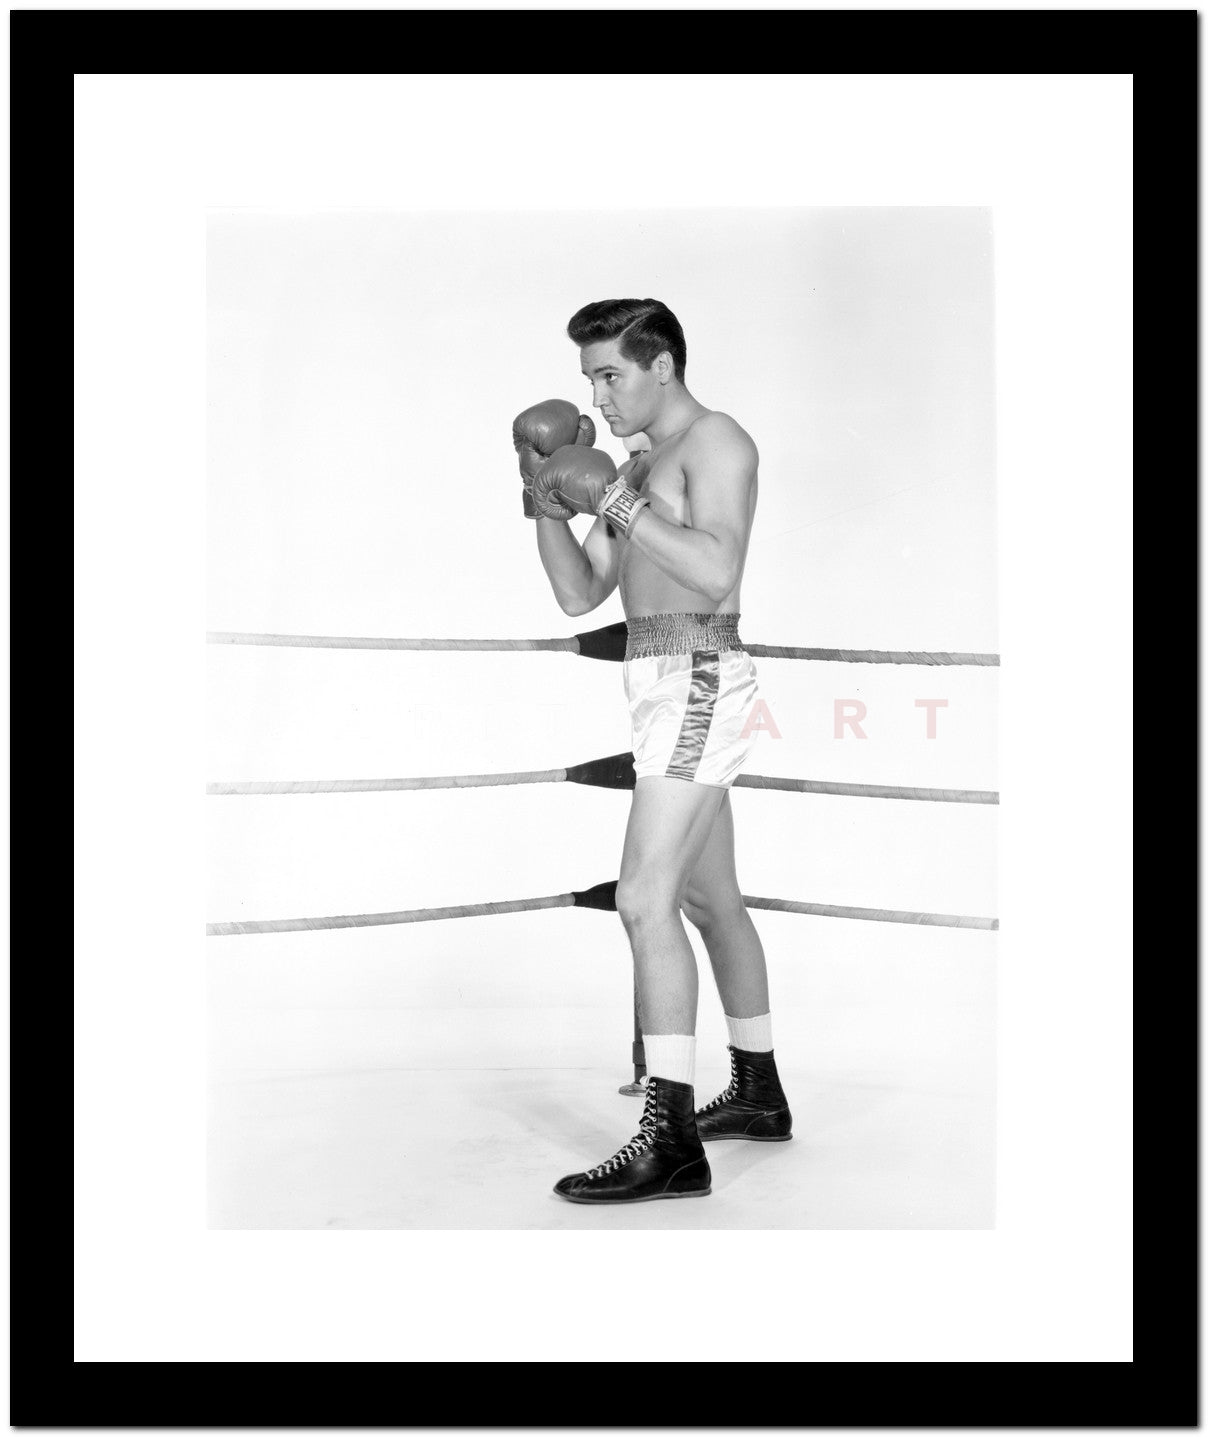 Elvis Presley Posed in Boxing Outfit Premium Art Print – Celebrity Vault